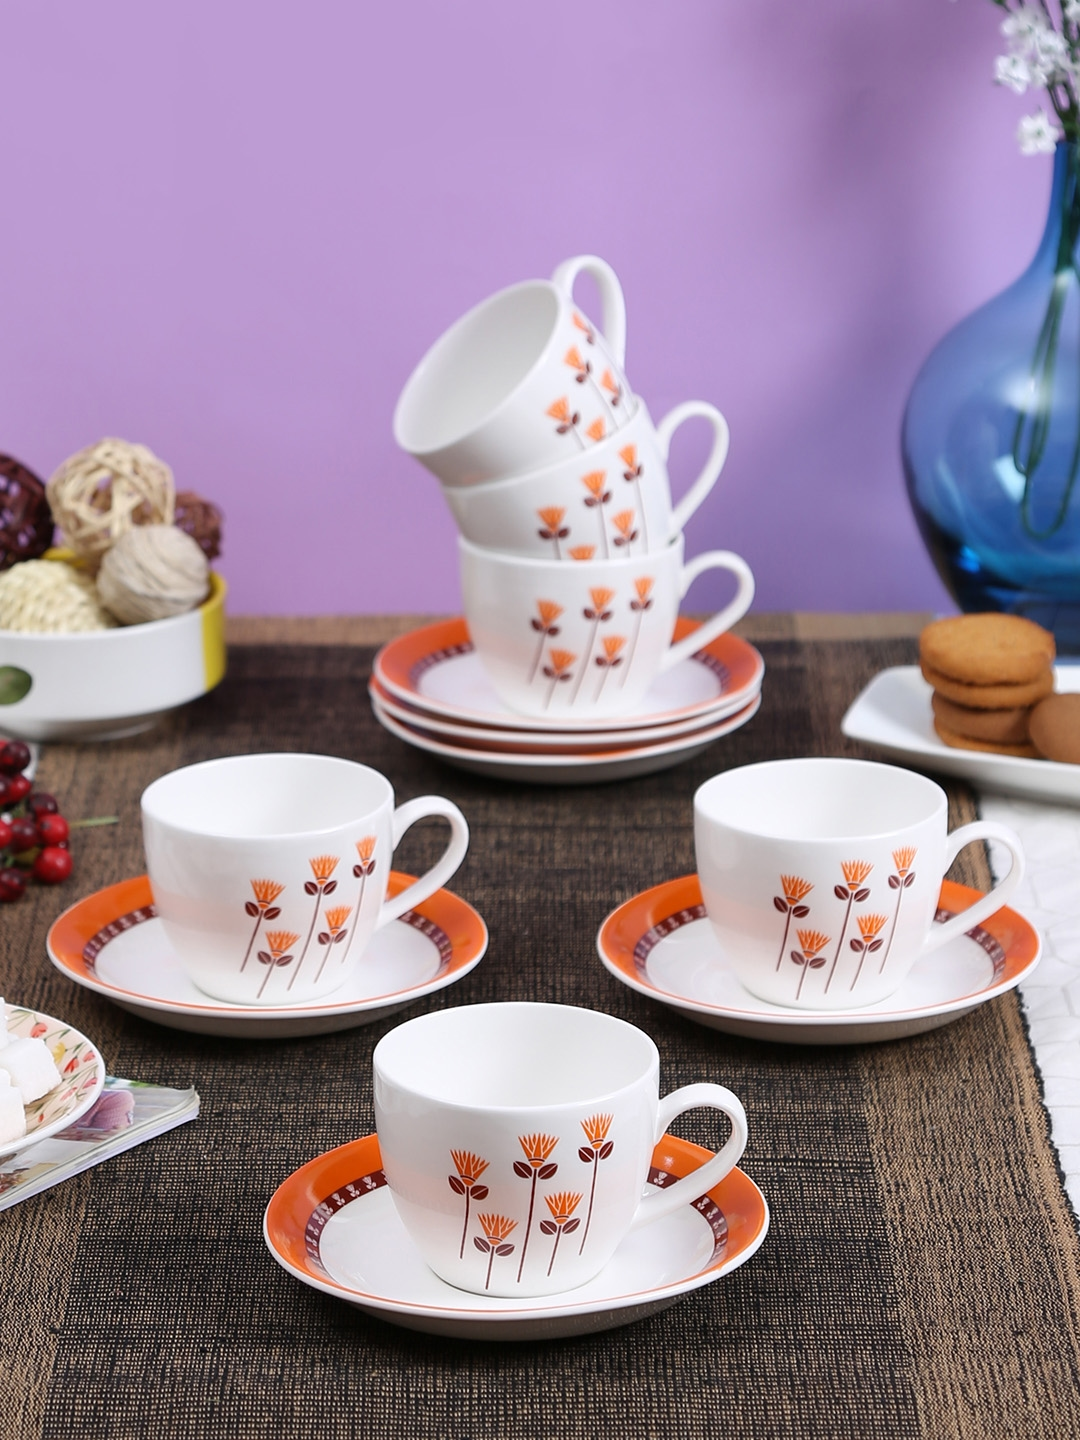 Buy Clay Craft White Printed Bone China Tea Set Cups And Mugs For Unisex 8590561 Myntra